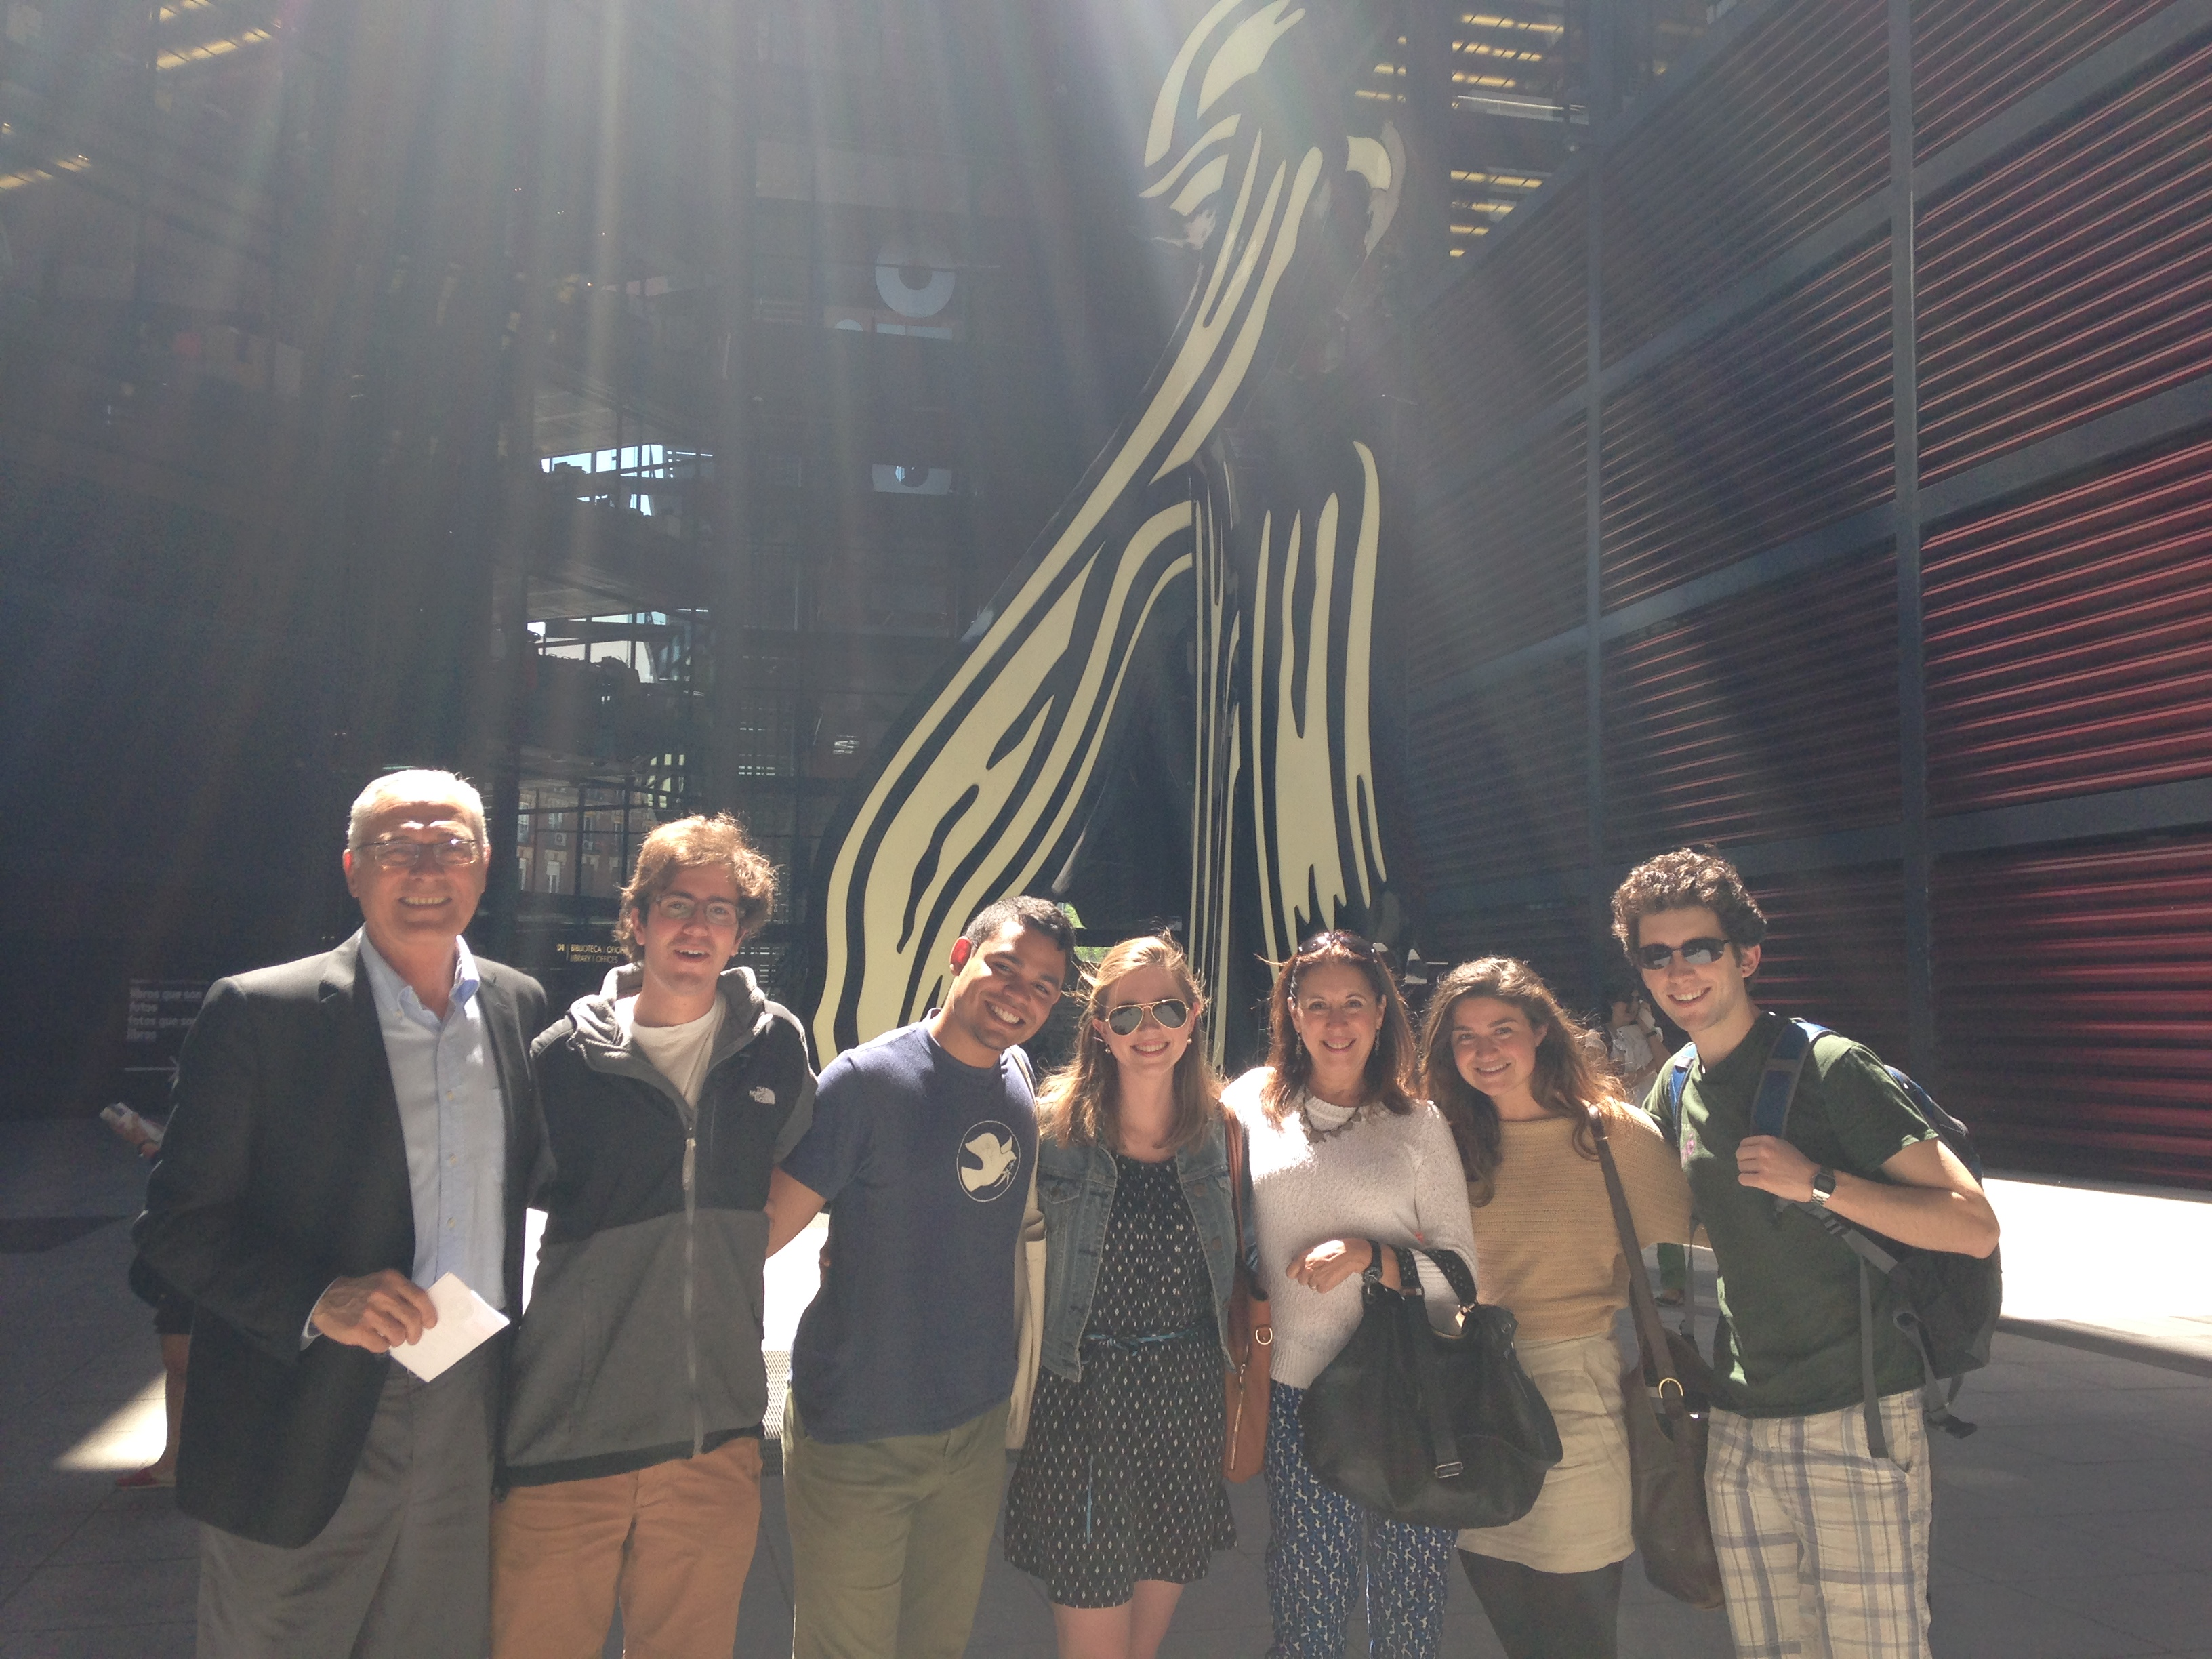 Here's Professor Rangil with the same group in front of Reina Sofia!